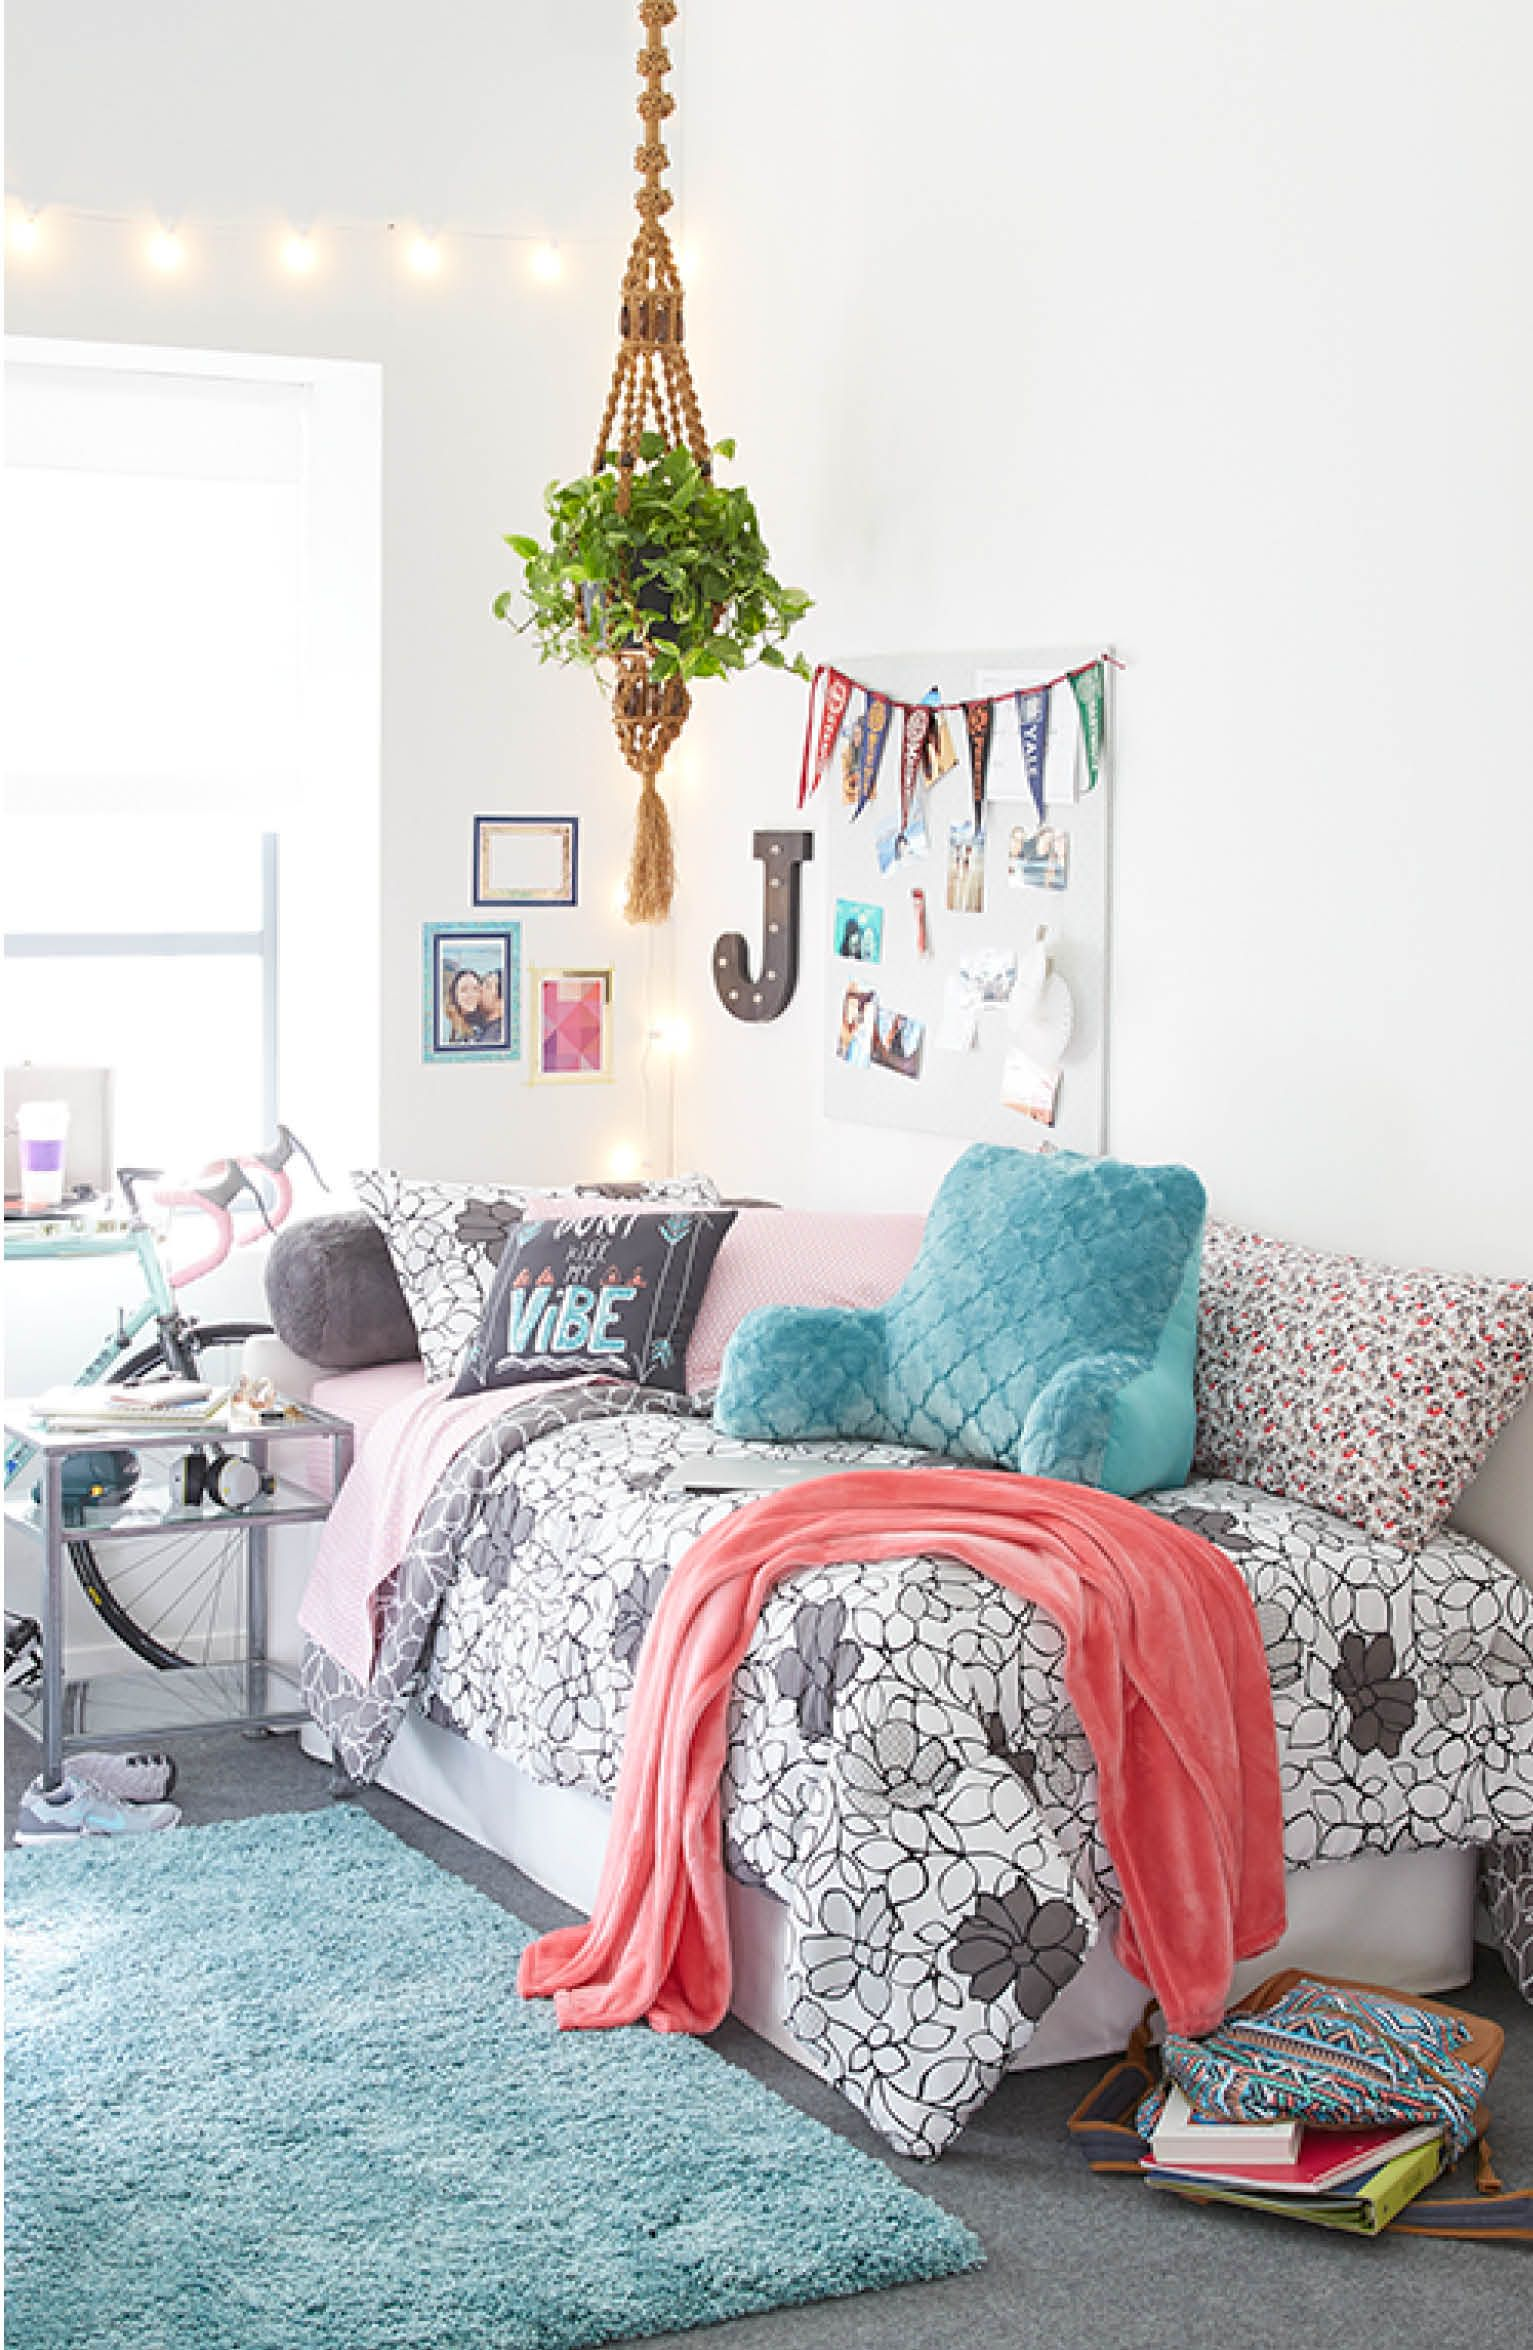 Dorm Room Beds: Dorm Room Love! Create A Space That Is So You . Add Fun